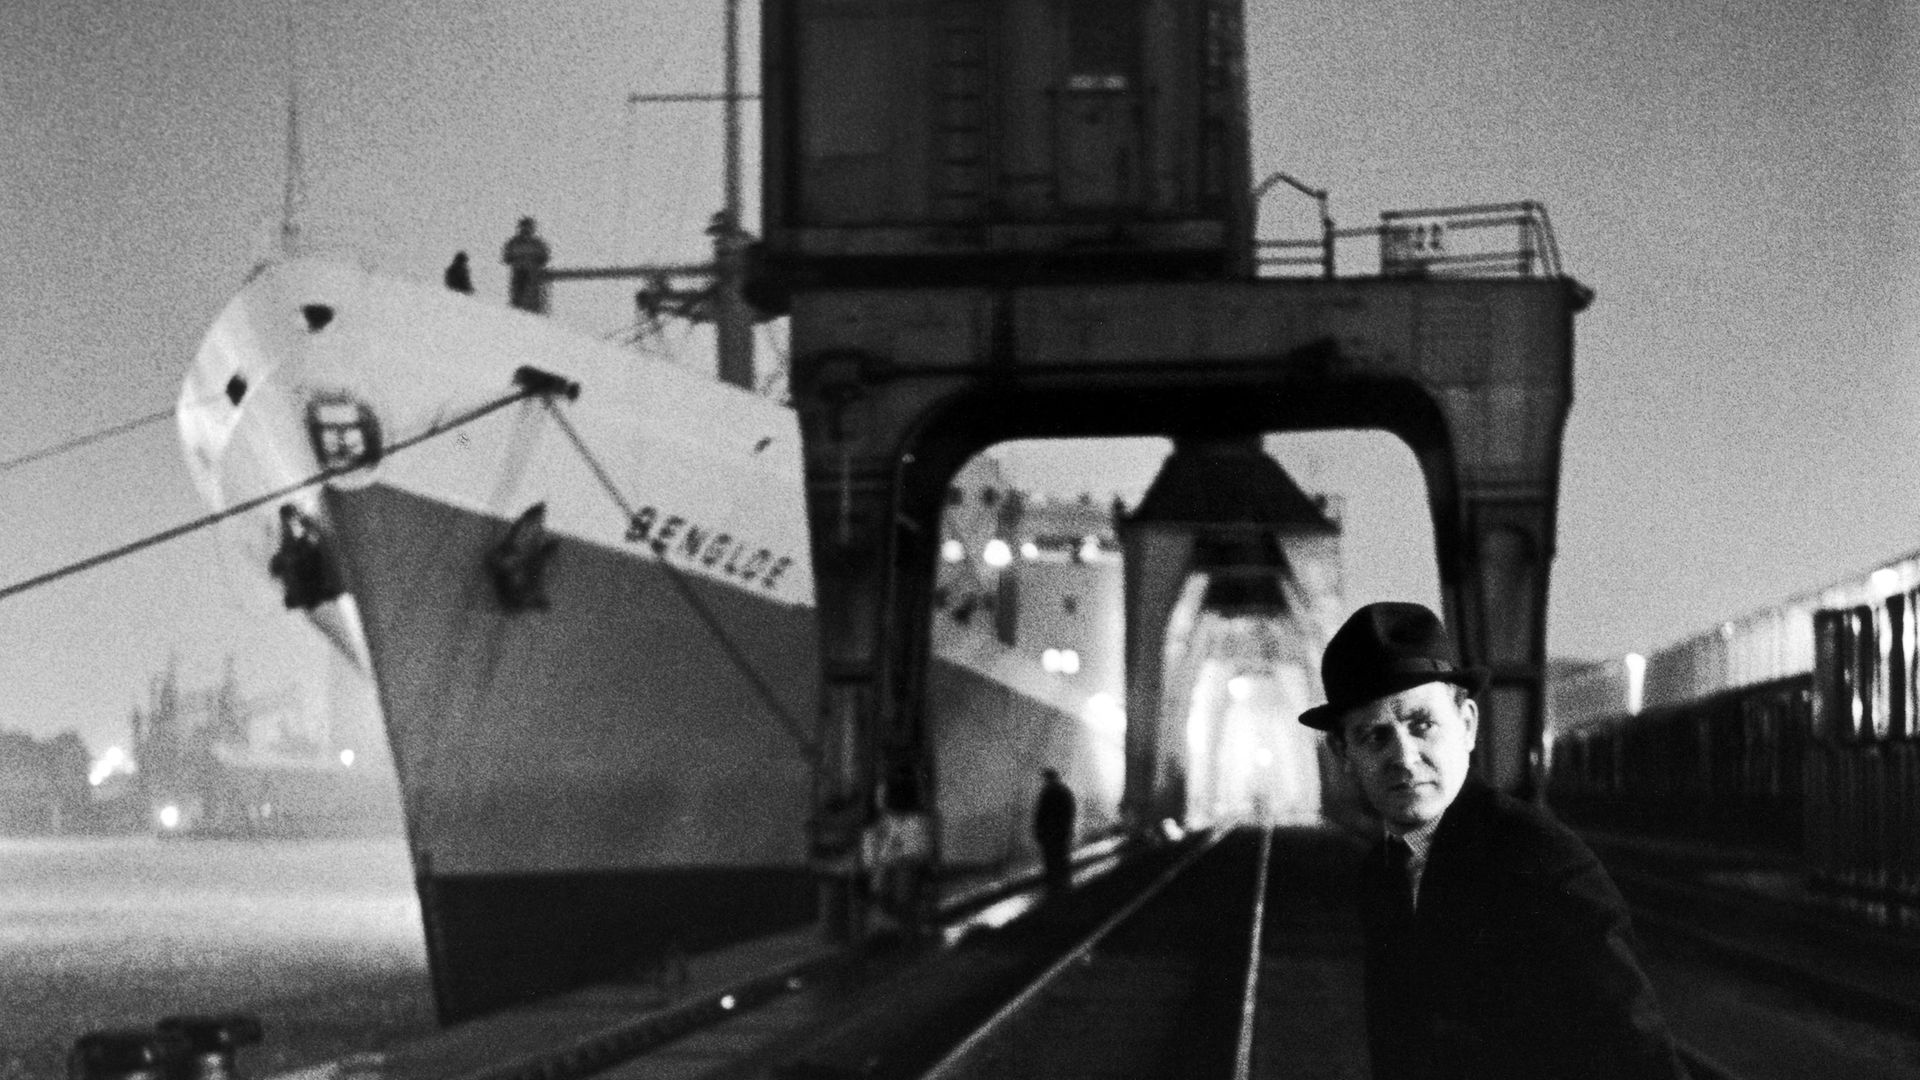 David Cornwell, or John le Carré, photographed down at the docks in 1964 - Credit: The LIFE Picture Collection via